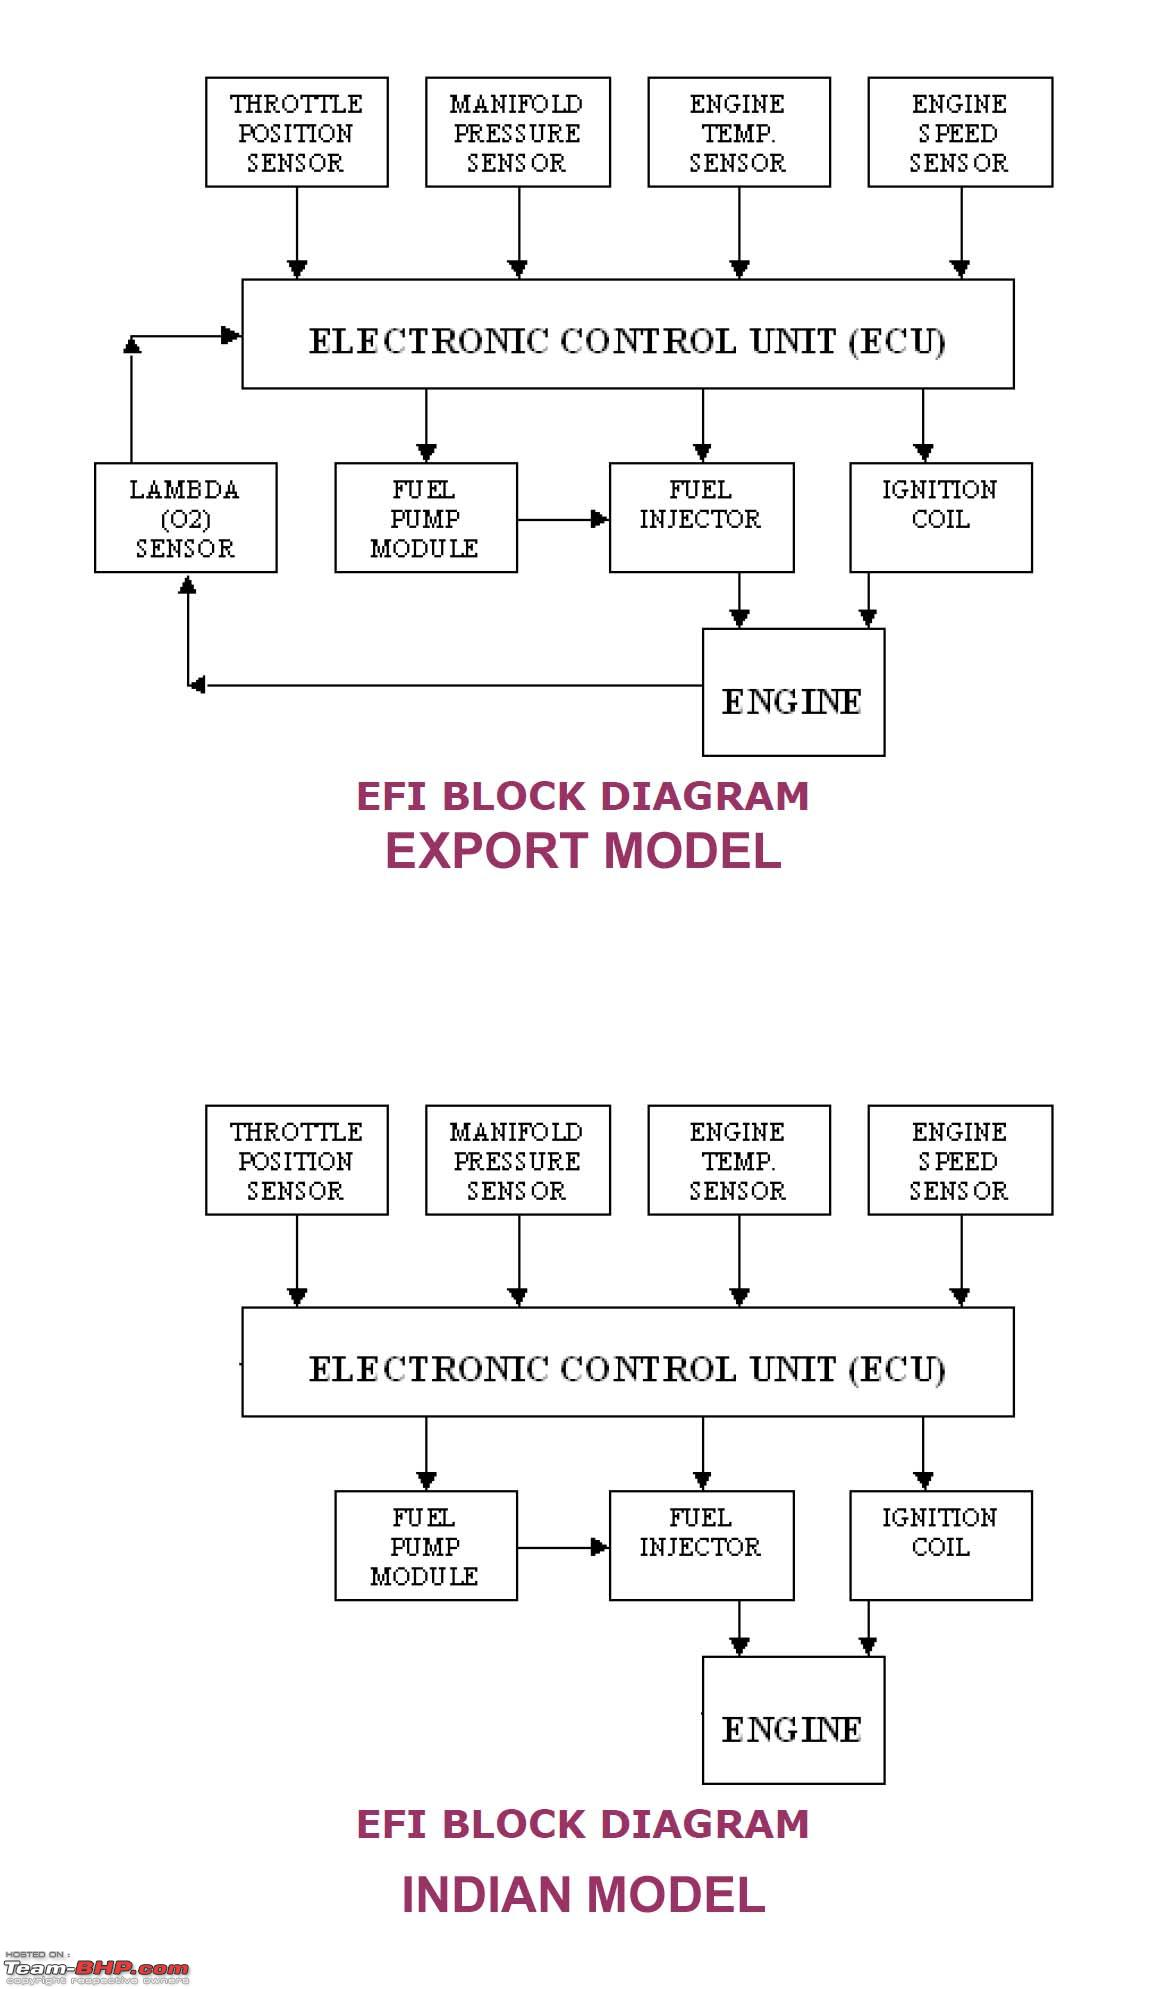 Bdx Honda Ruckus Wiring Diagram Electrical Diagrams Fuel Injector 2009 32 Images Rectifier For Gy6 150cc